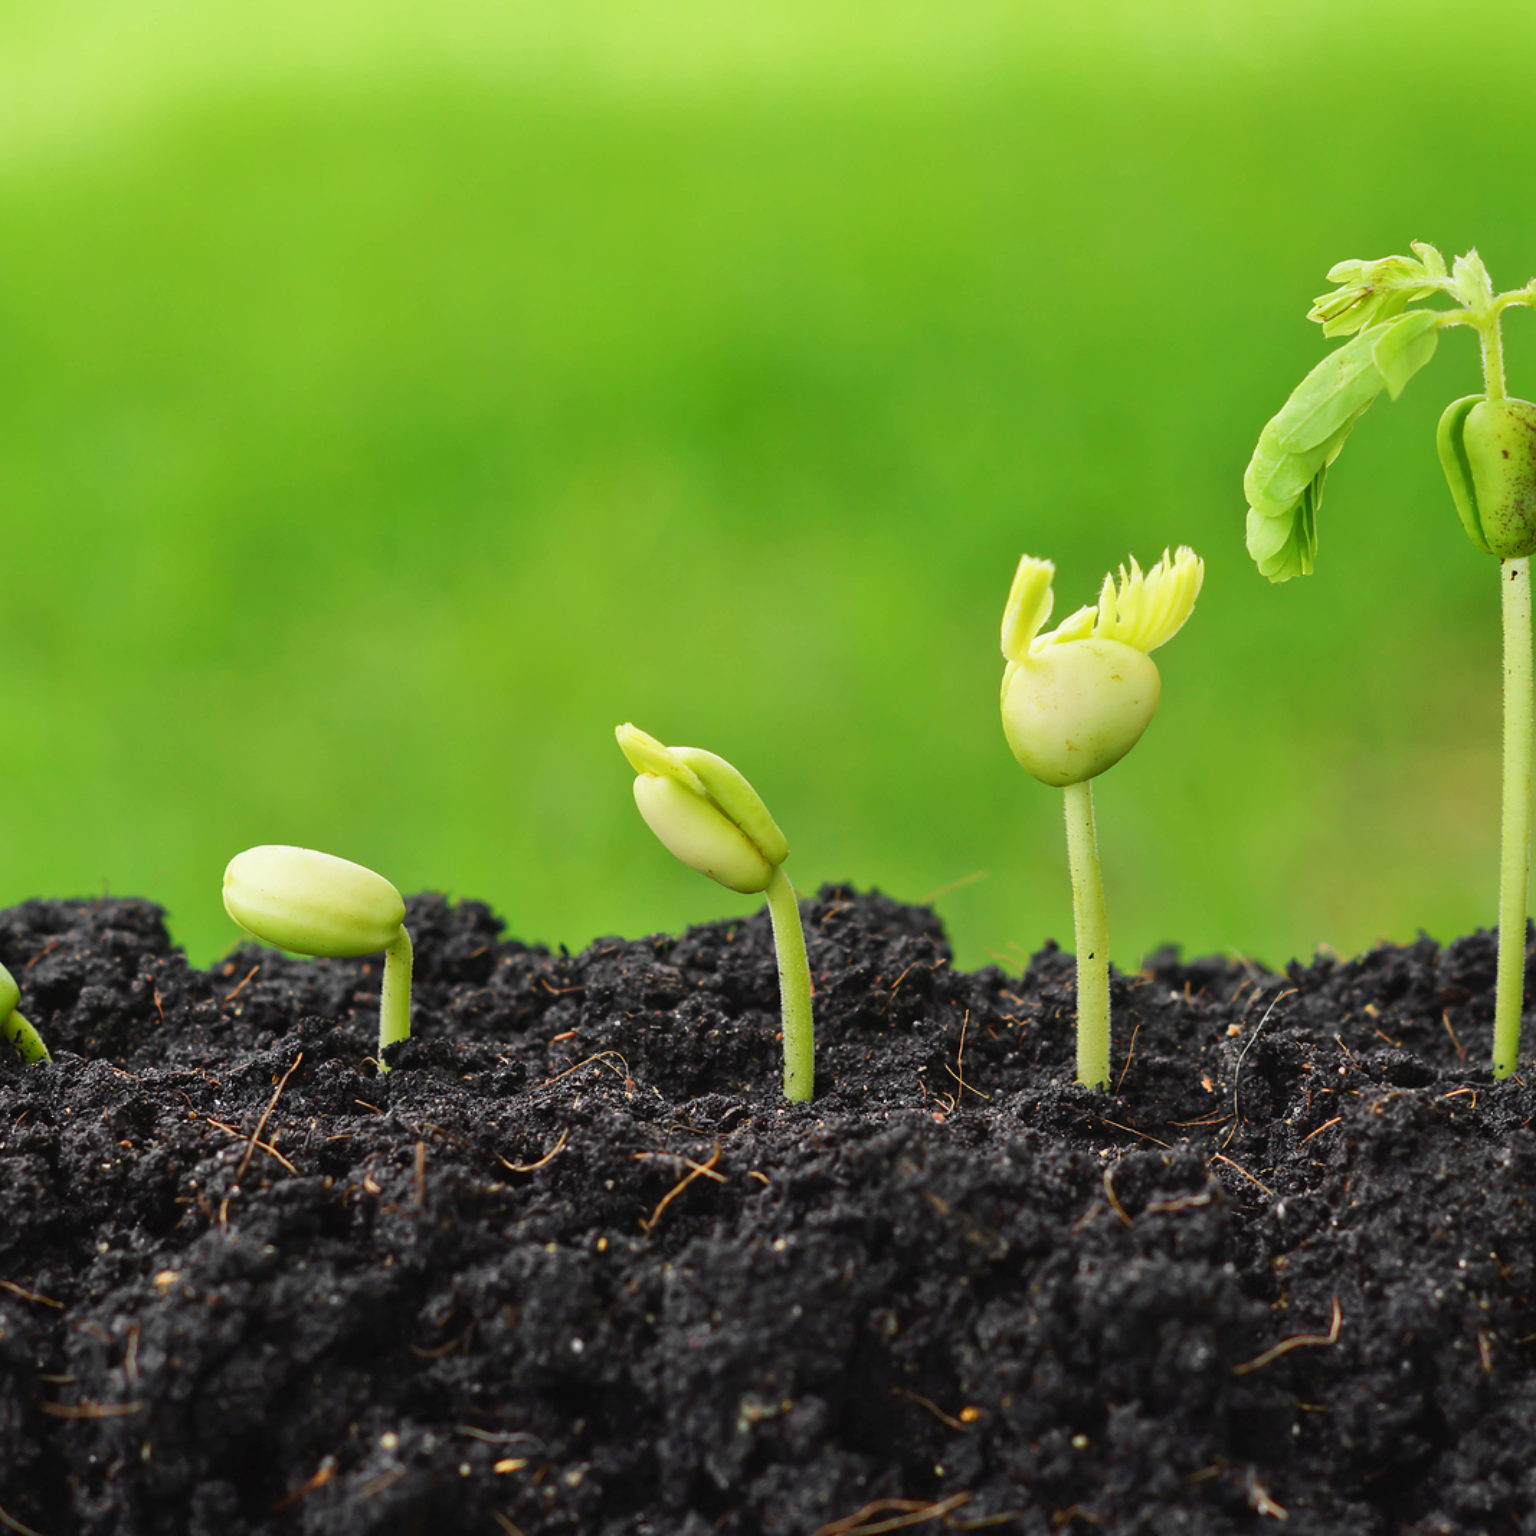 plants growing in sequence of seed germination on soil, evolution concept